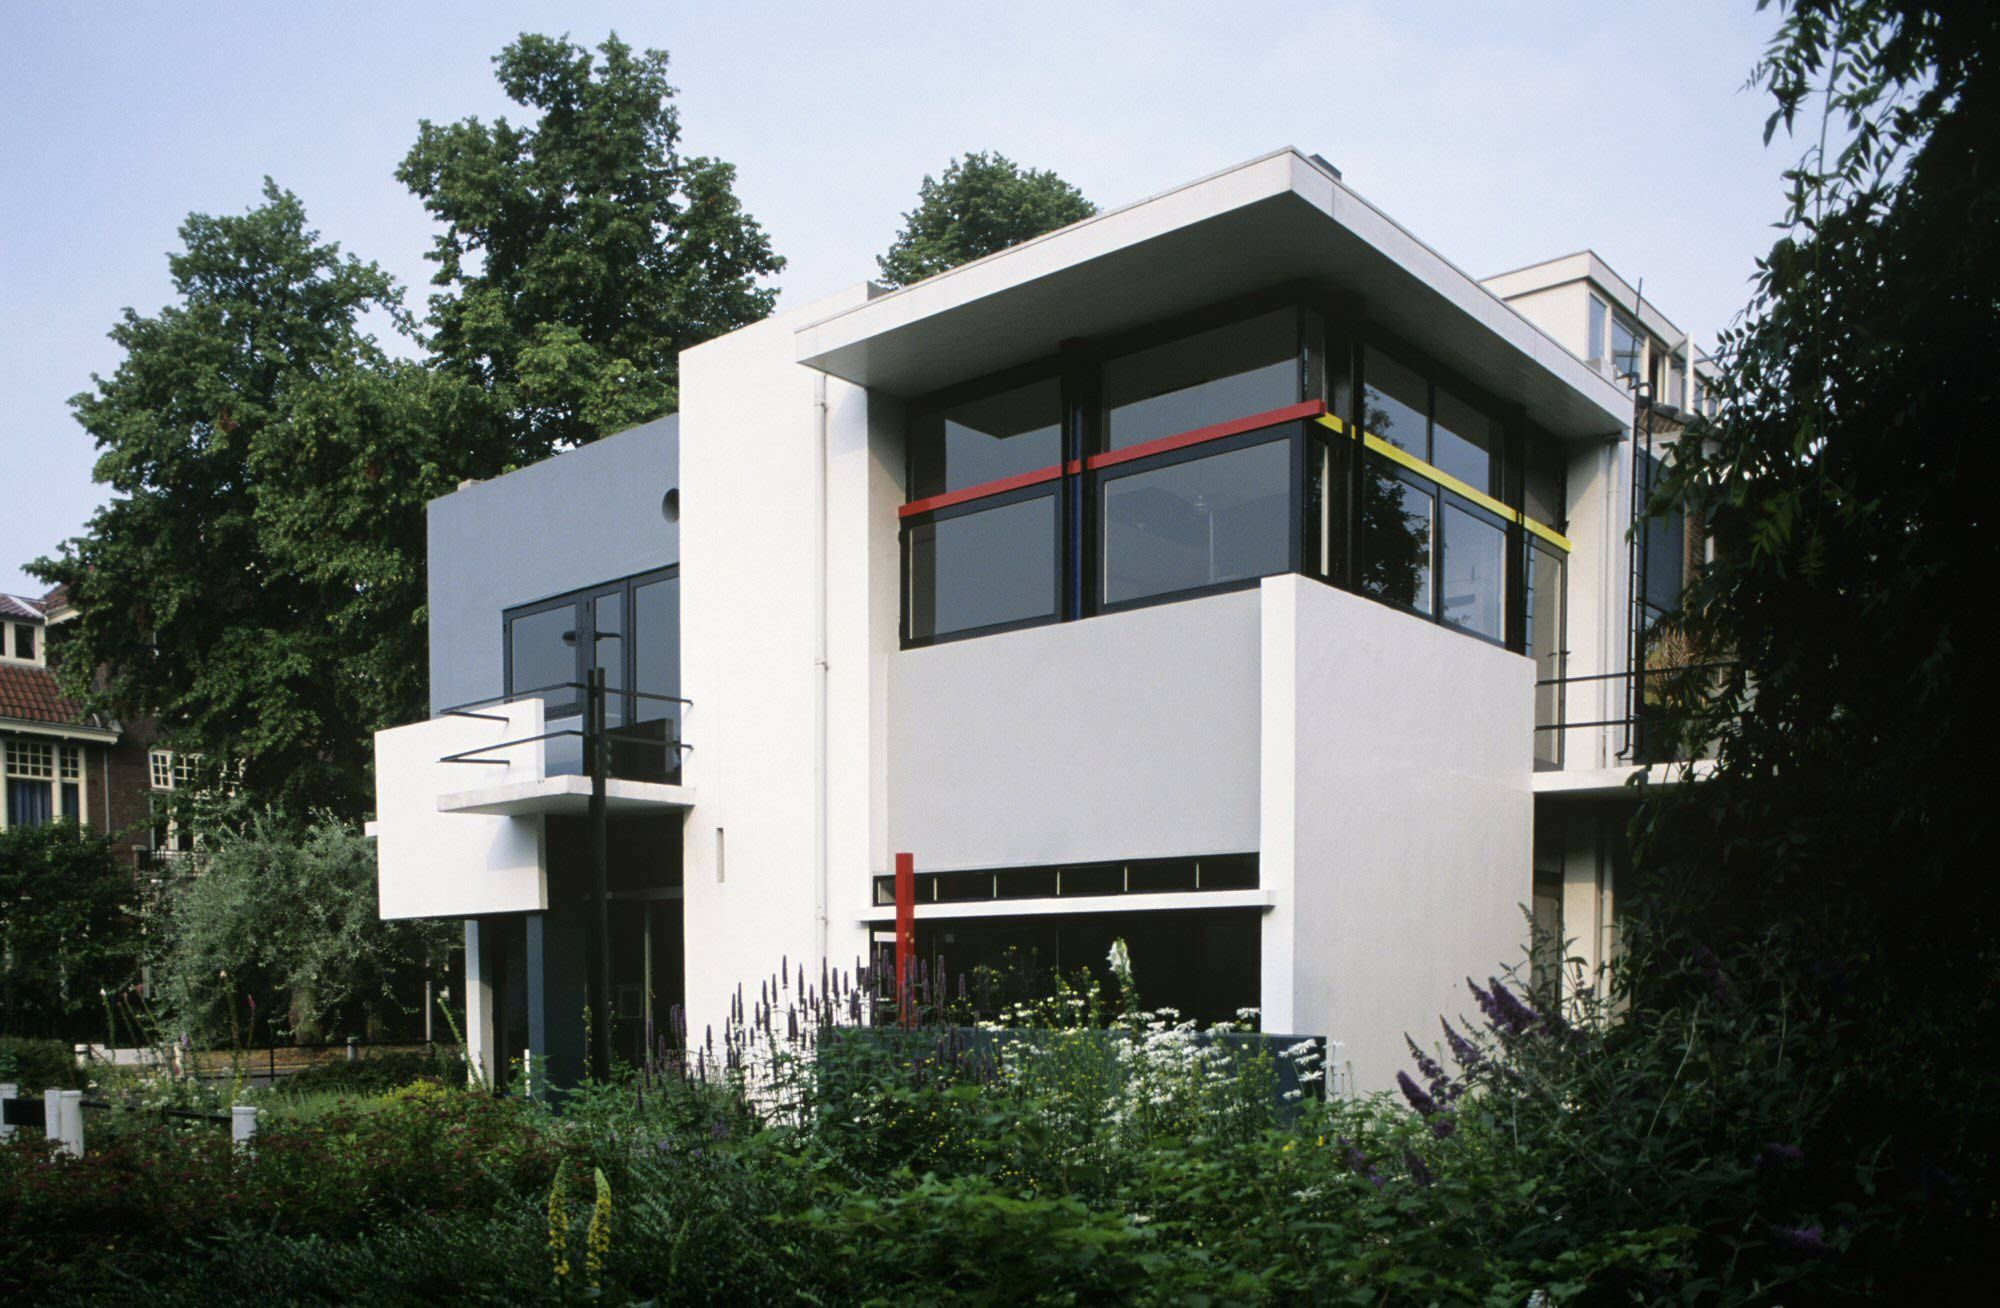 The Look of Modern Architecture De stijl Utrecht and Architecture